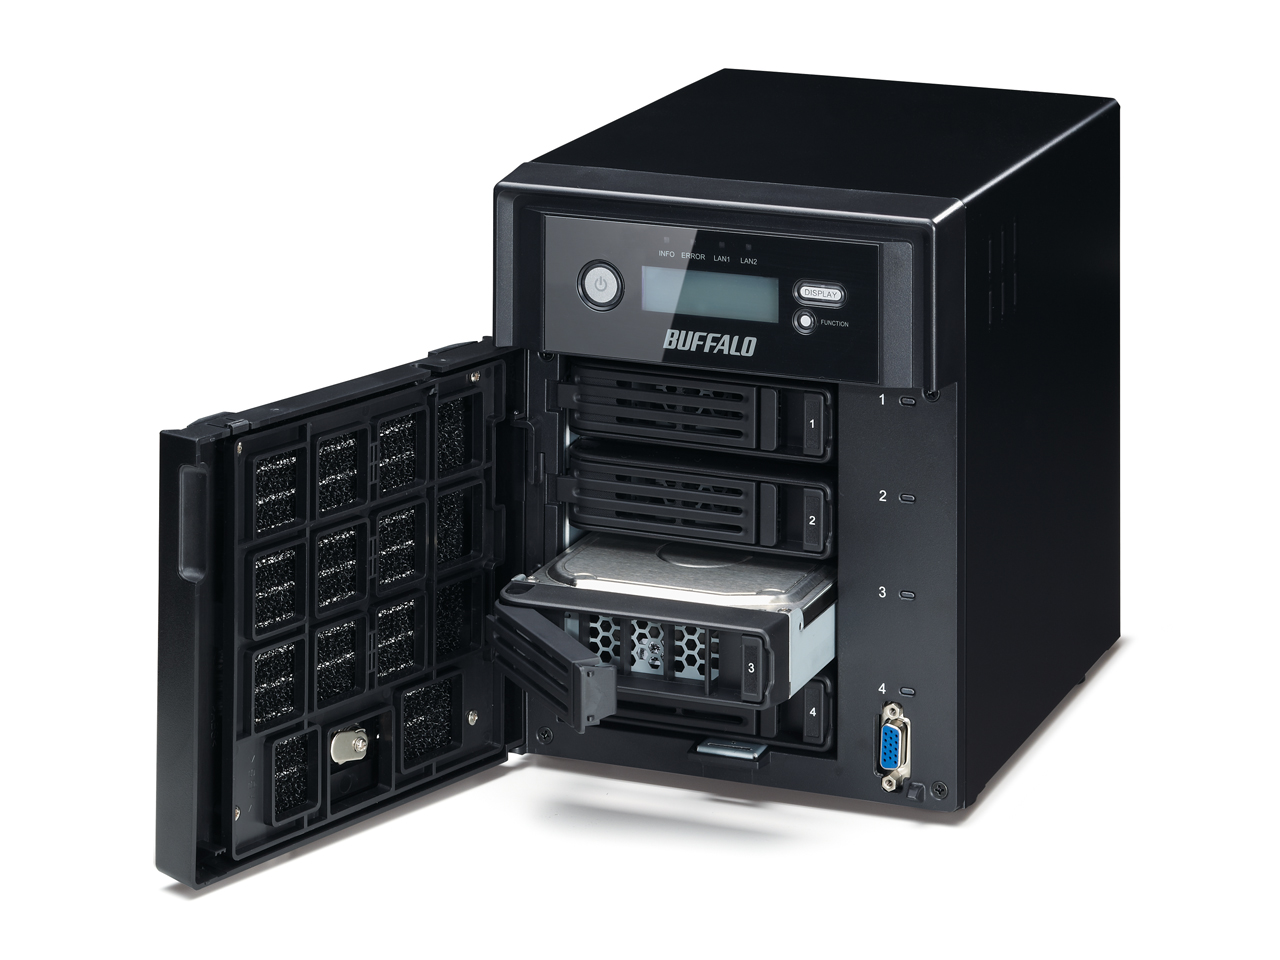 TS5400D without built-in hard disk 4 buffalo nas network storage server